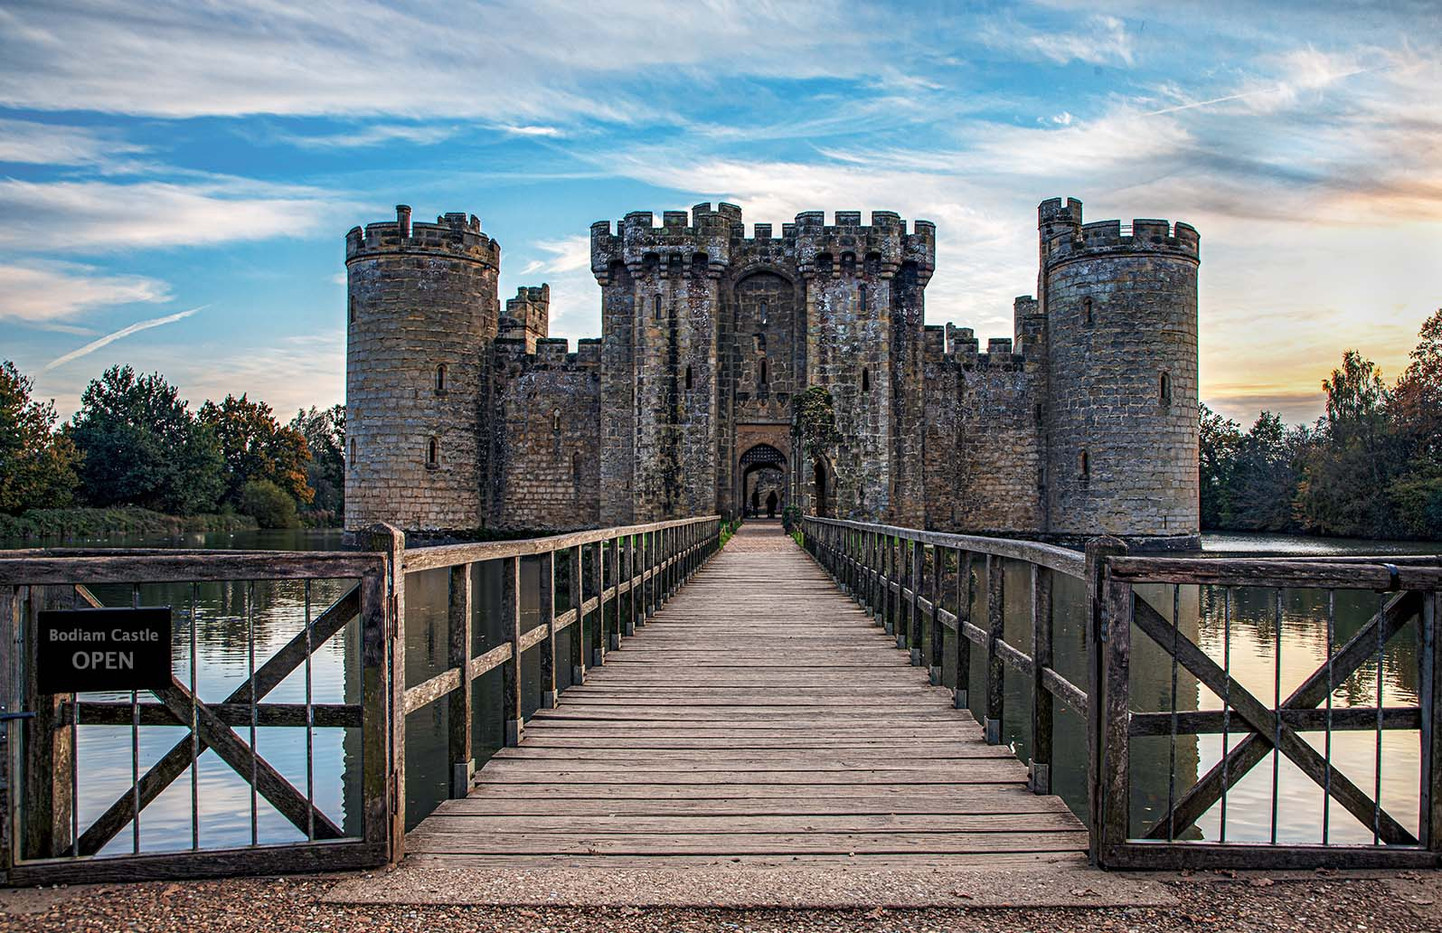 16 SHOWING THE WAY INTO TO BODIAM CASTLE by Philip Easom